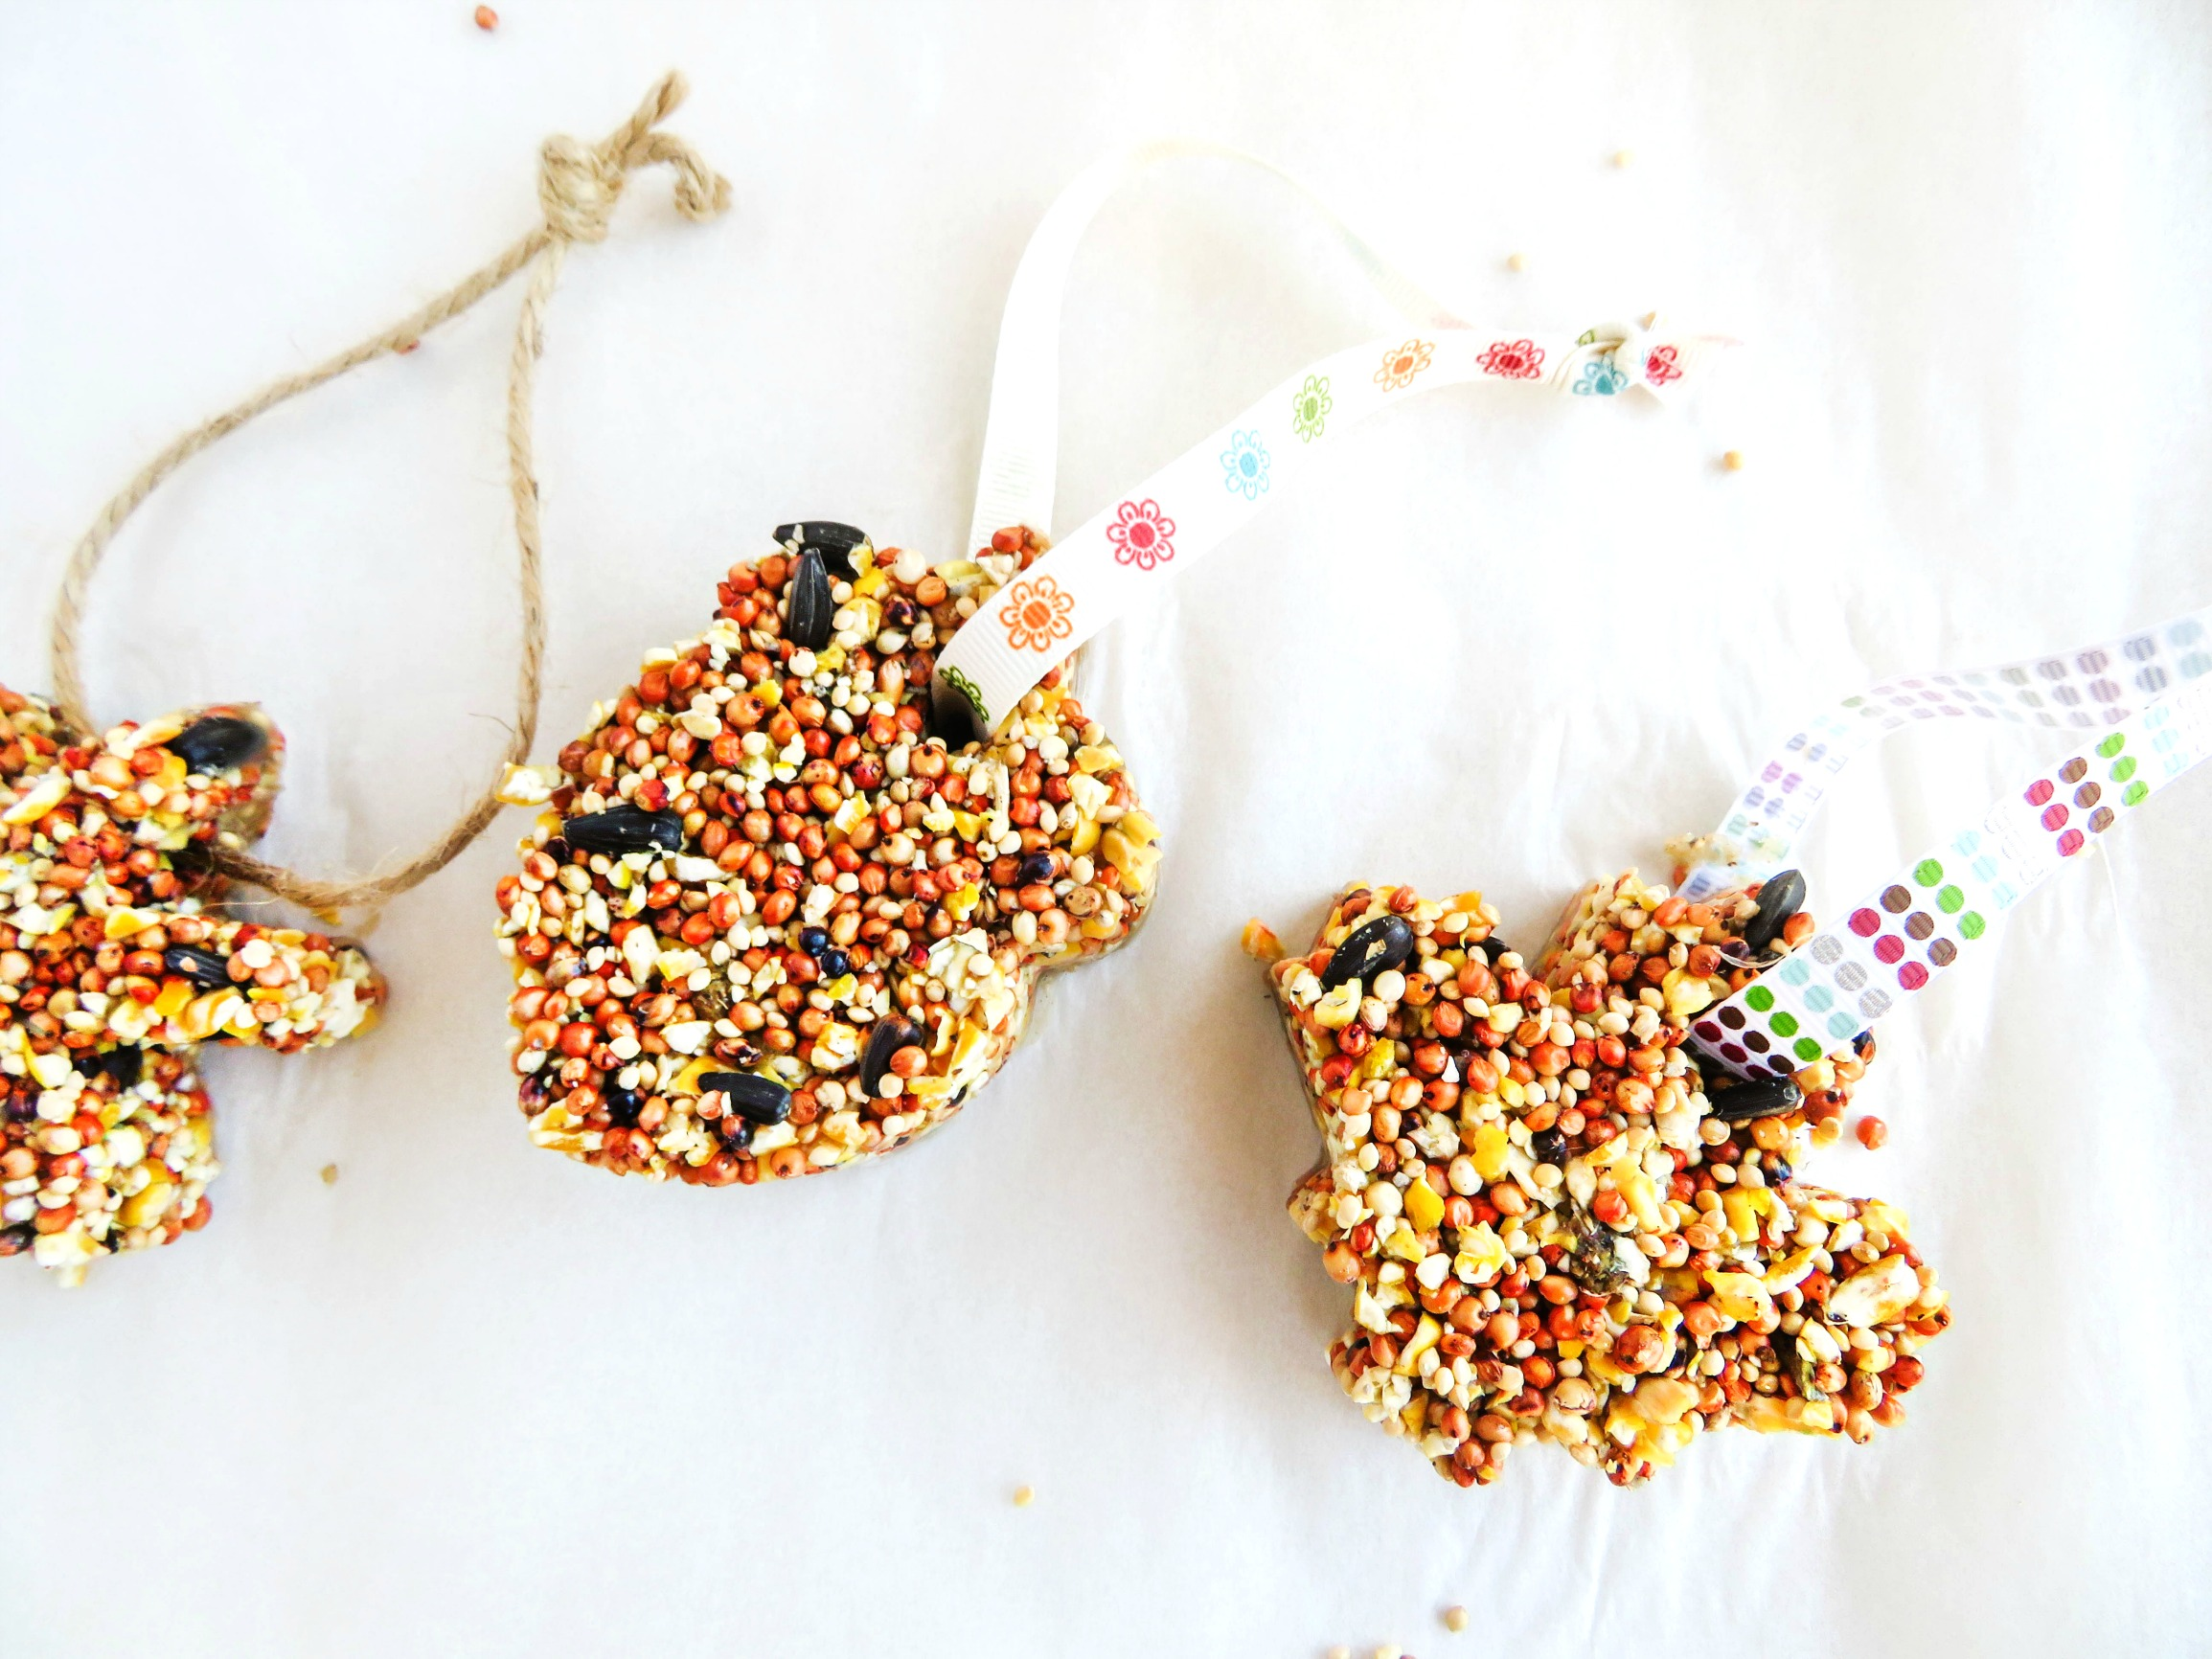 How to Make The Best Birdseed Ornaments, Homemade Birdseed treats make the perfect family activity, DIY Bird feeders are a great craft for kids